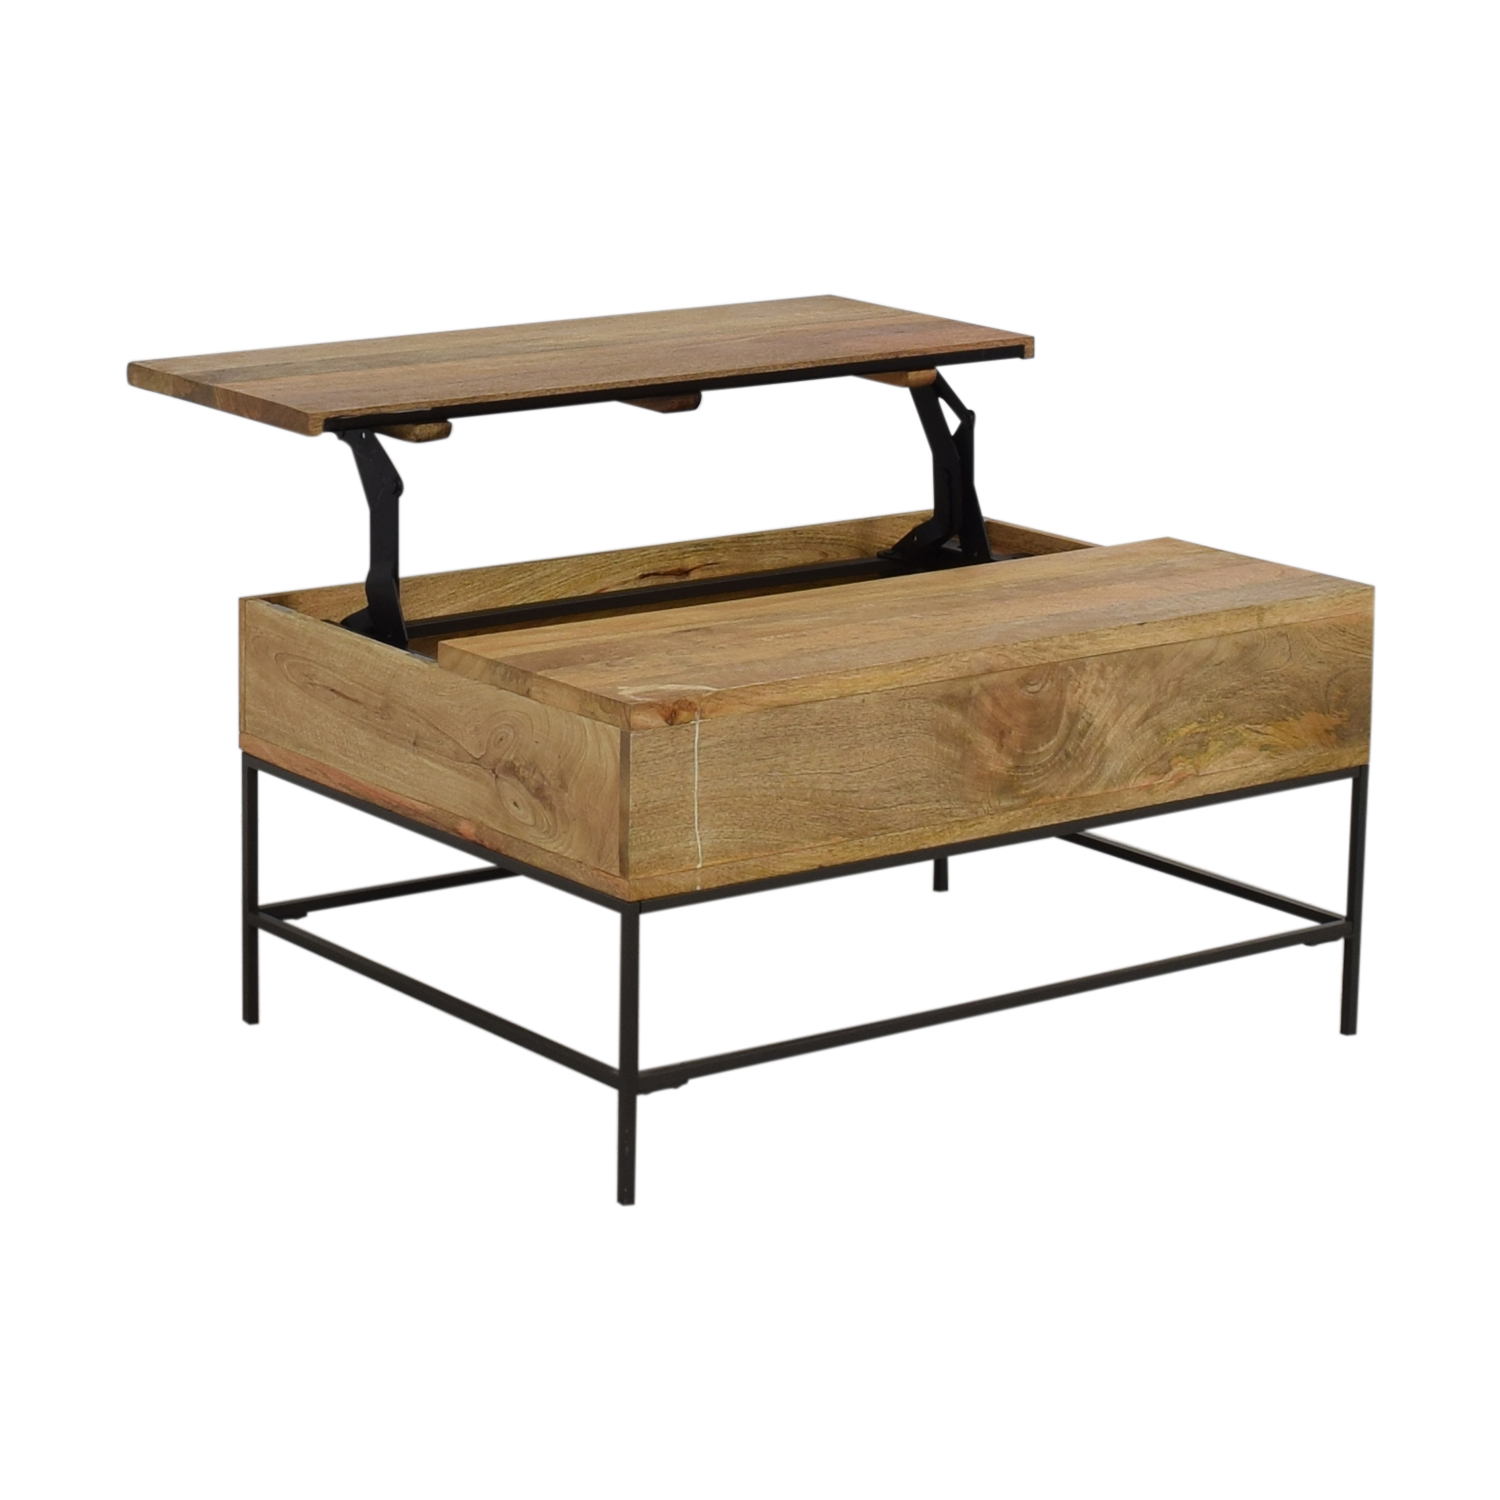 West Elm West Elm Industrial Storage Pop-Up Coffee Table for sale